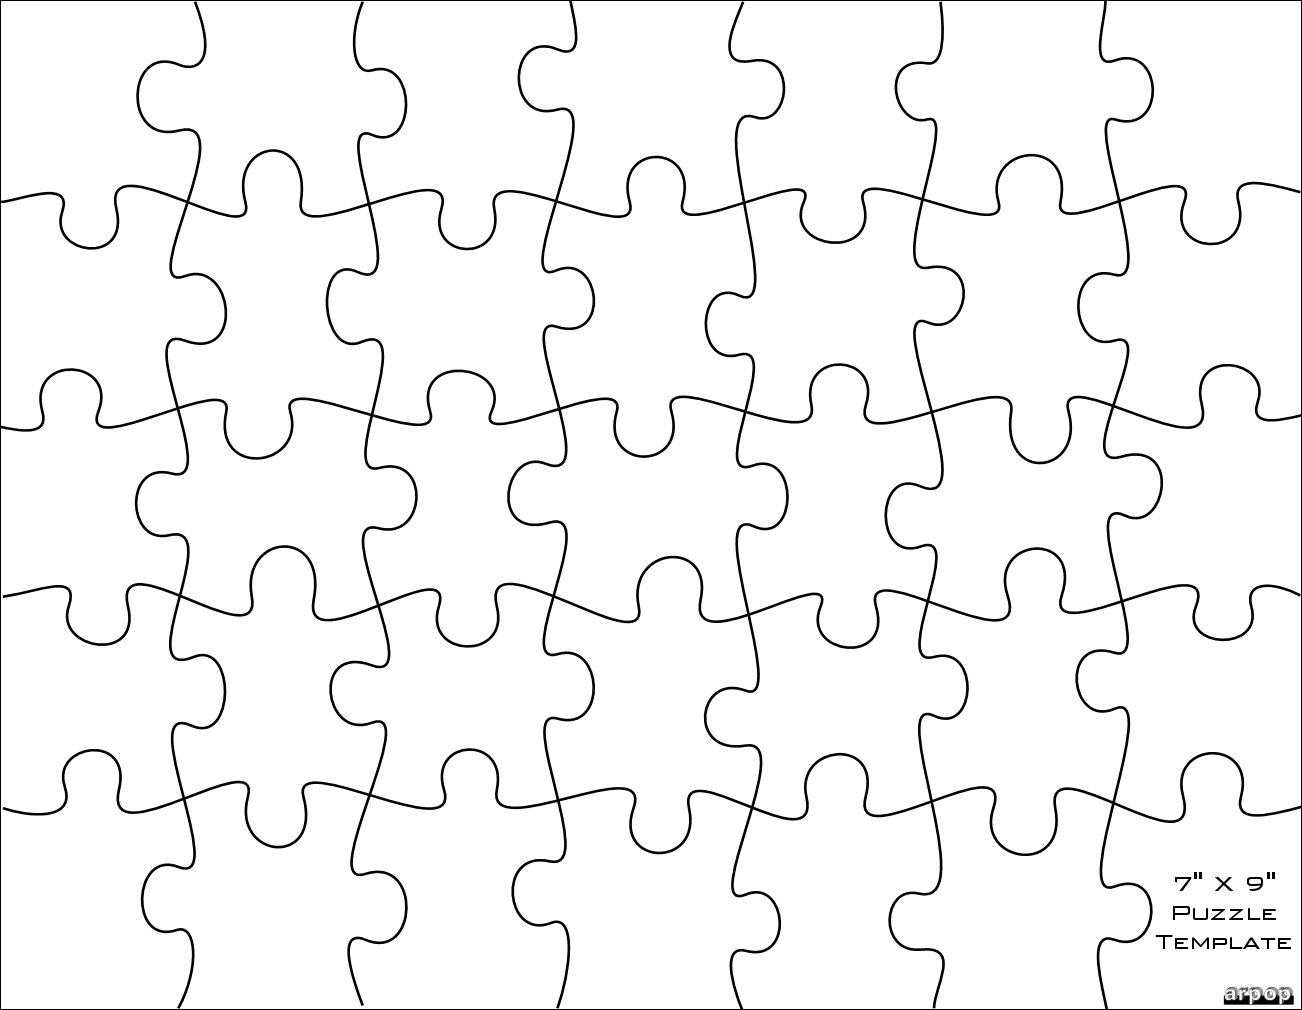 Free Puzzle Pieces Template, Download Free Clip Art, Free Clip Art - Printable 8X10 Puzzle Template